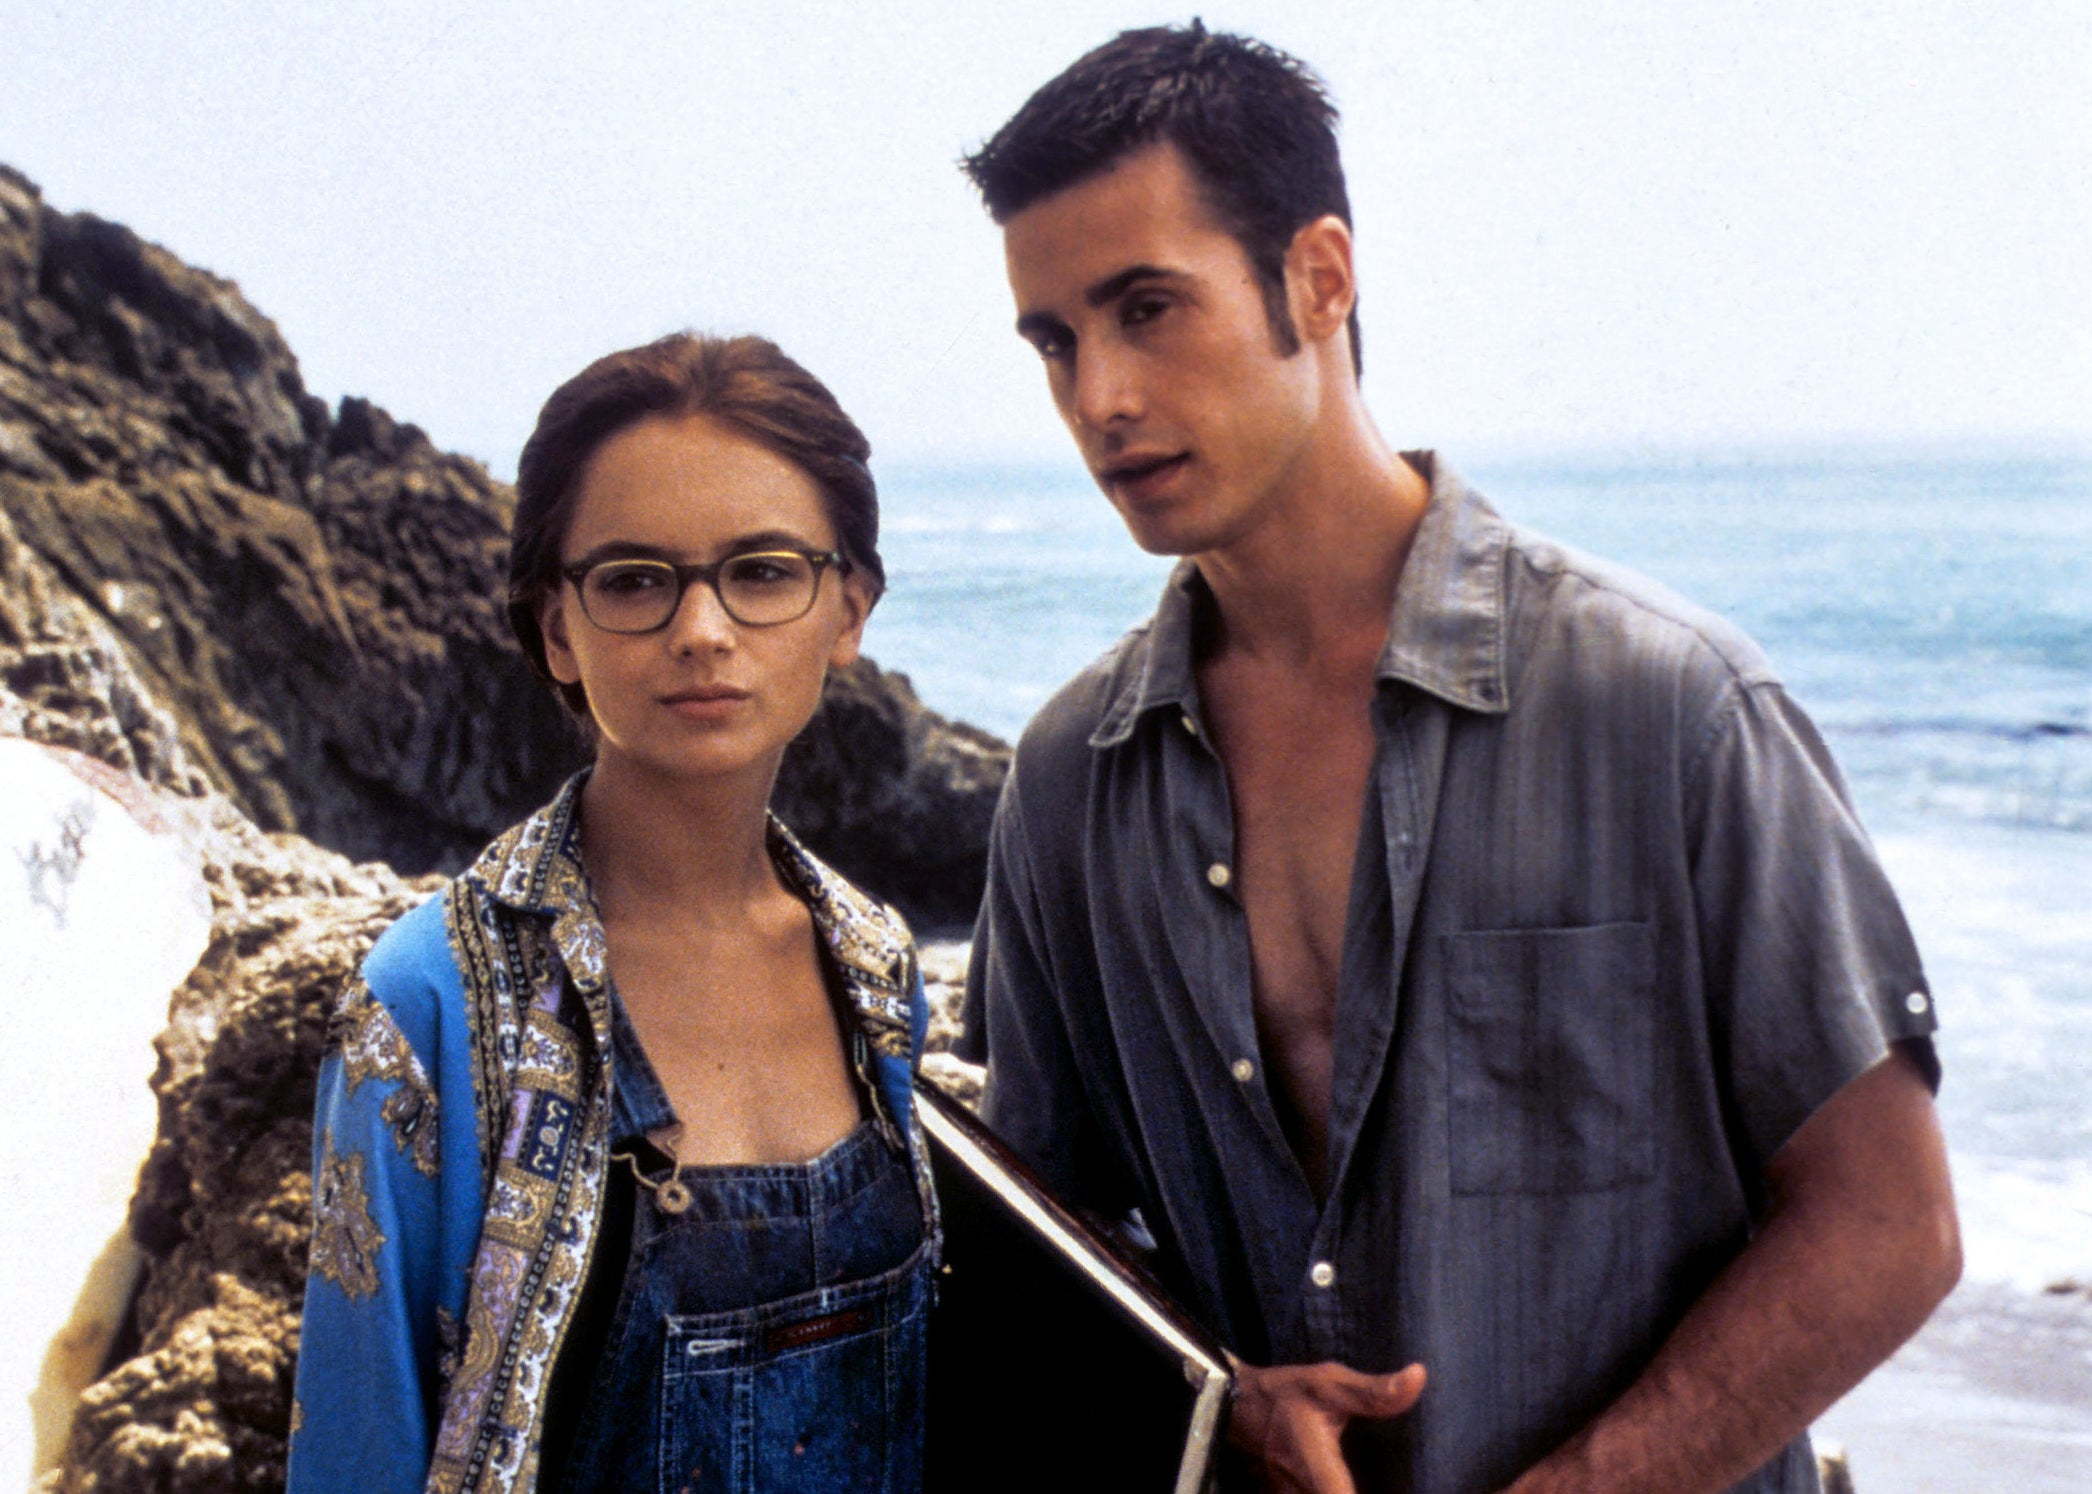 Rachael and Freddie stand on the beach in a shot from the movie